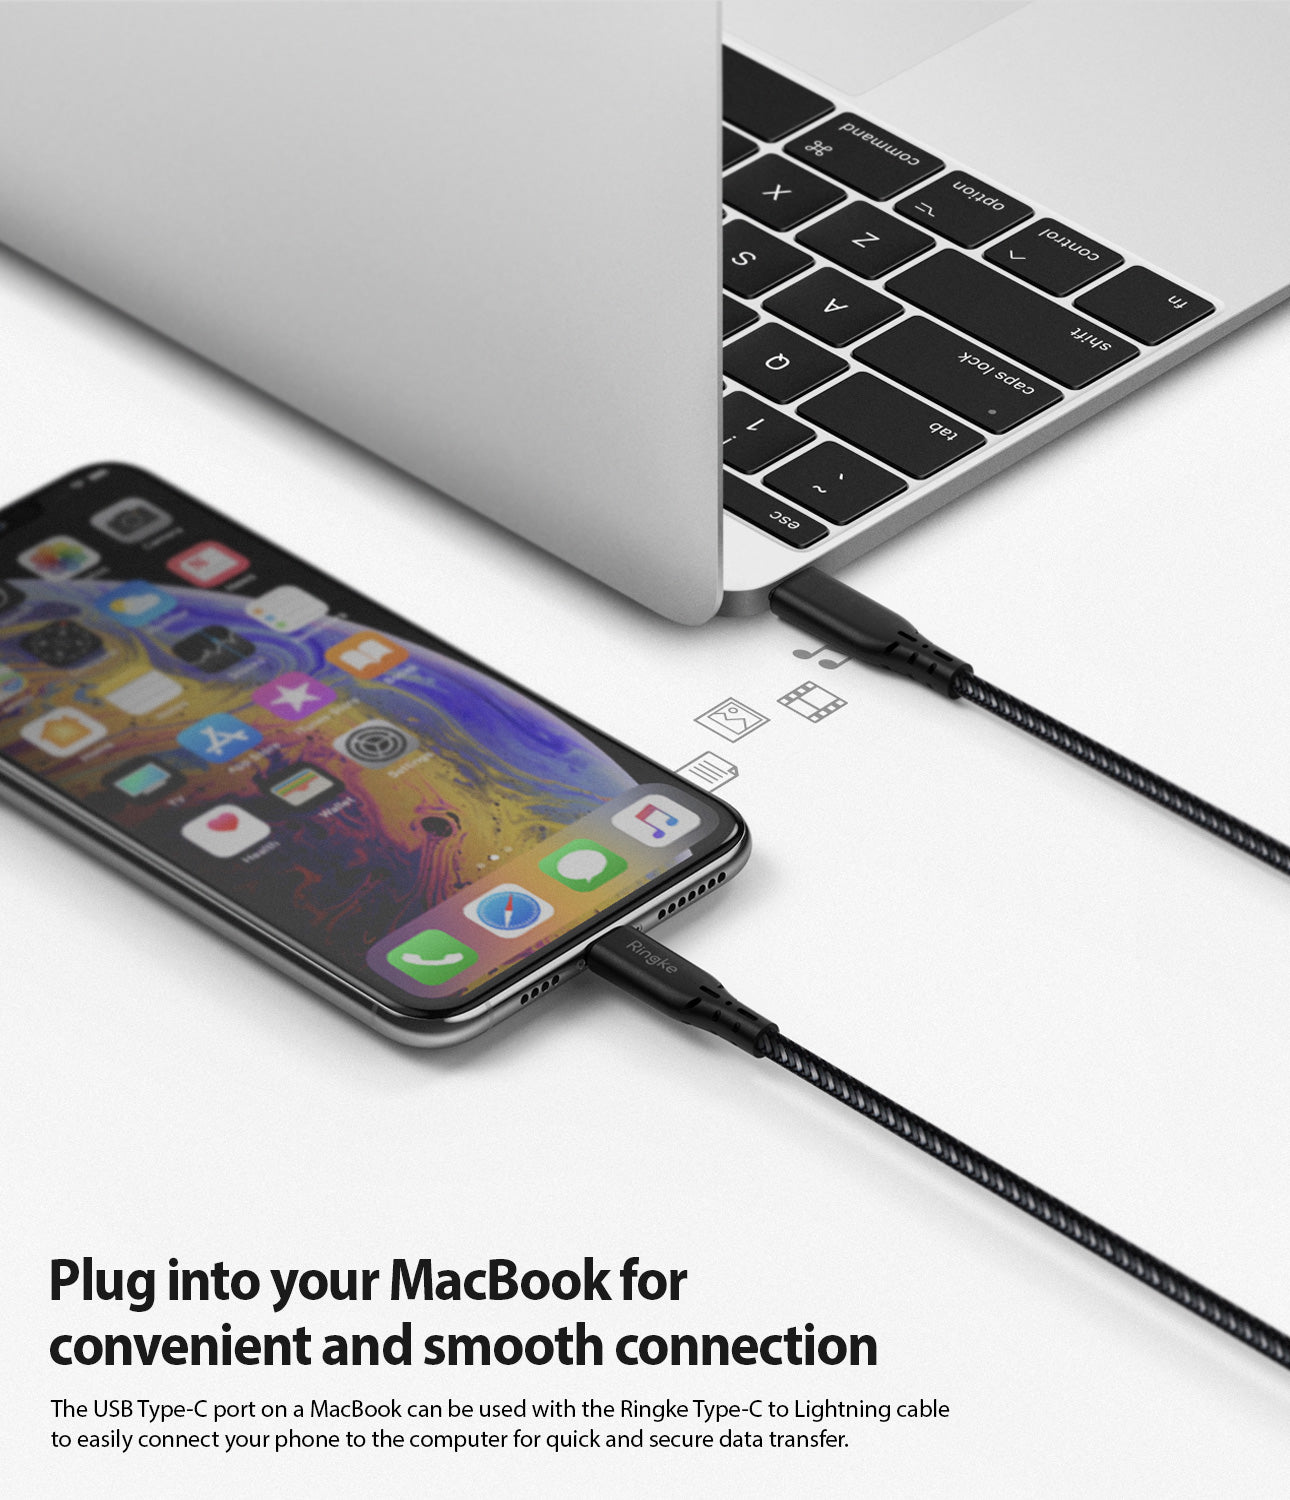 plug into your macbook for convenient and smooth connection